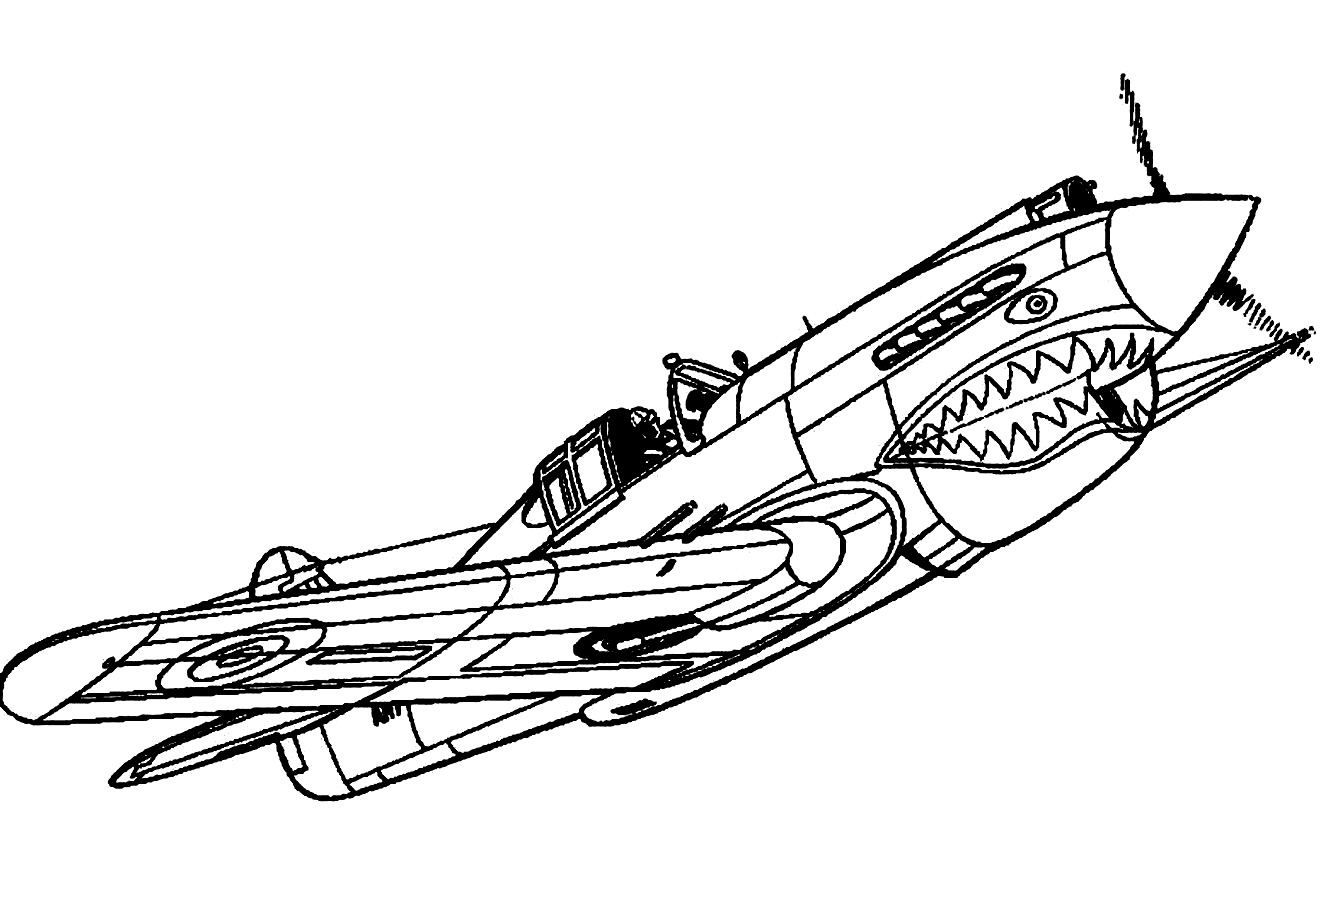 Airplane Coloring Pages The Sun Flower Pages In 2020 Airplane Coloring Pages Fnaf Coloring Pages Coloring Pages For Kids